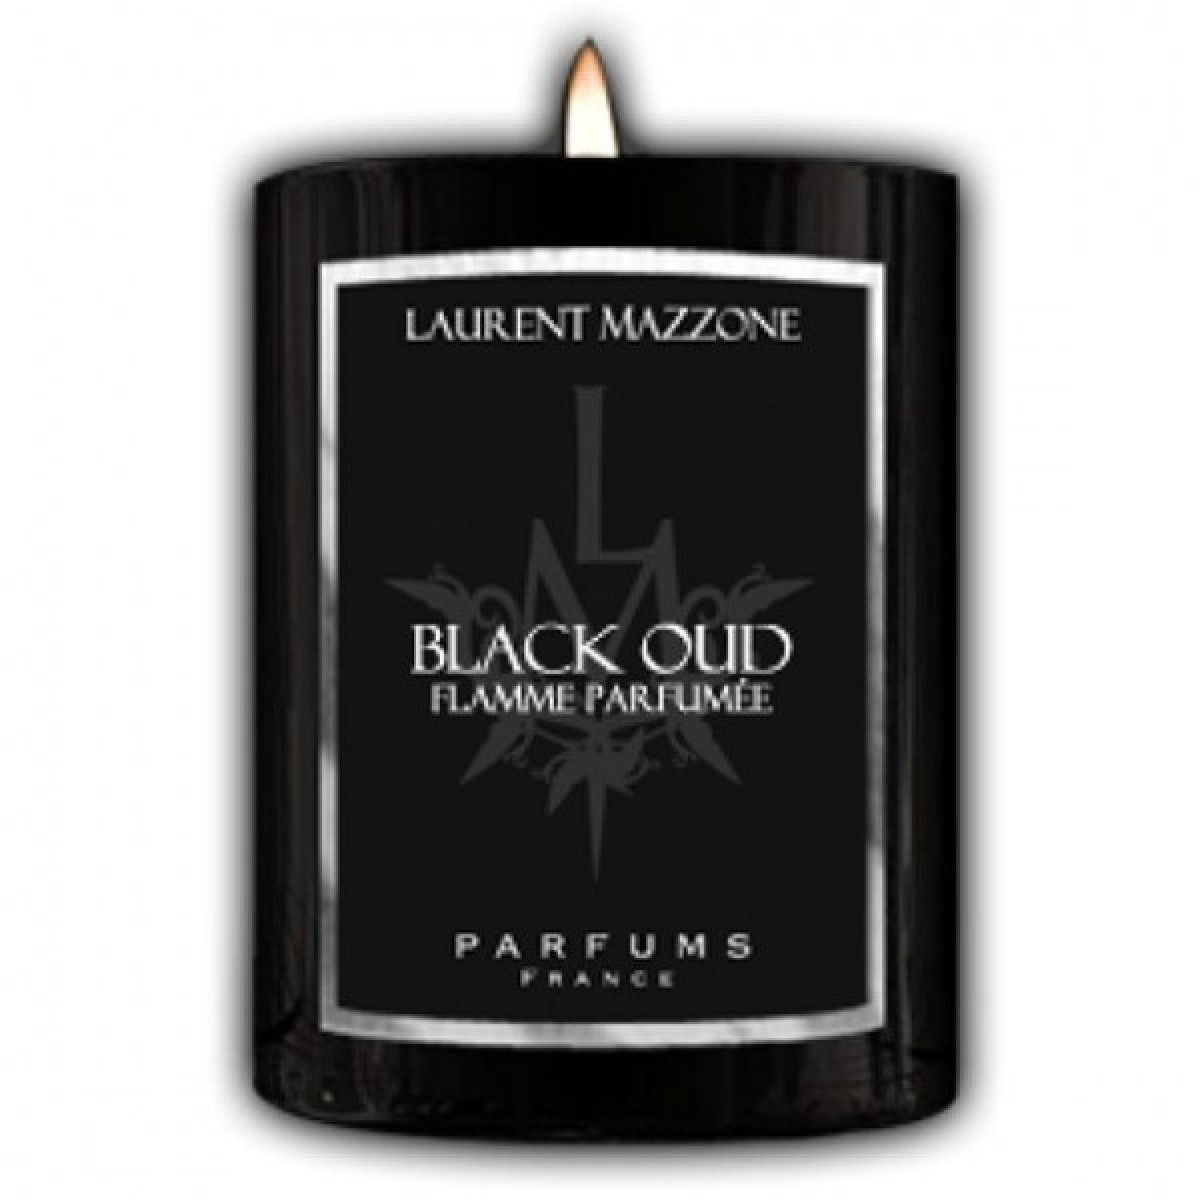 BLACK OUD - LM Parfums